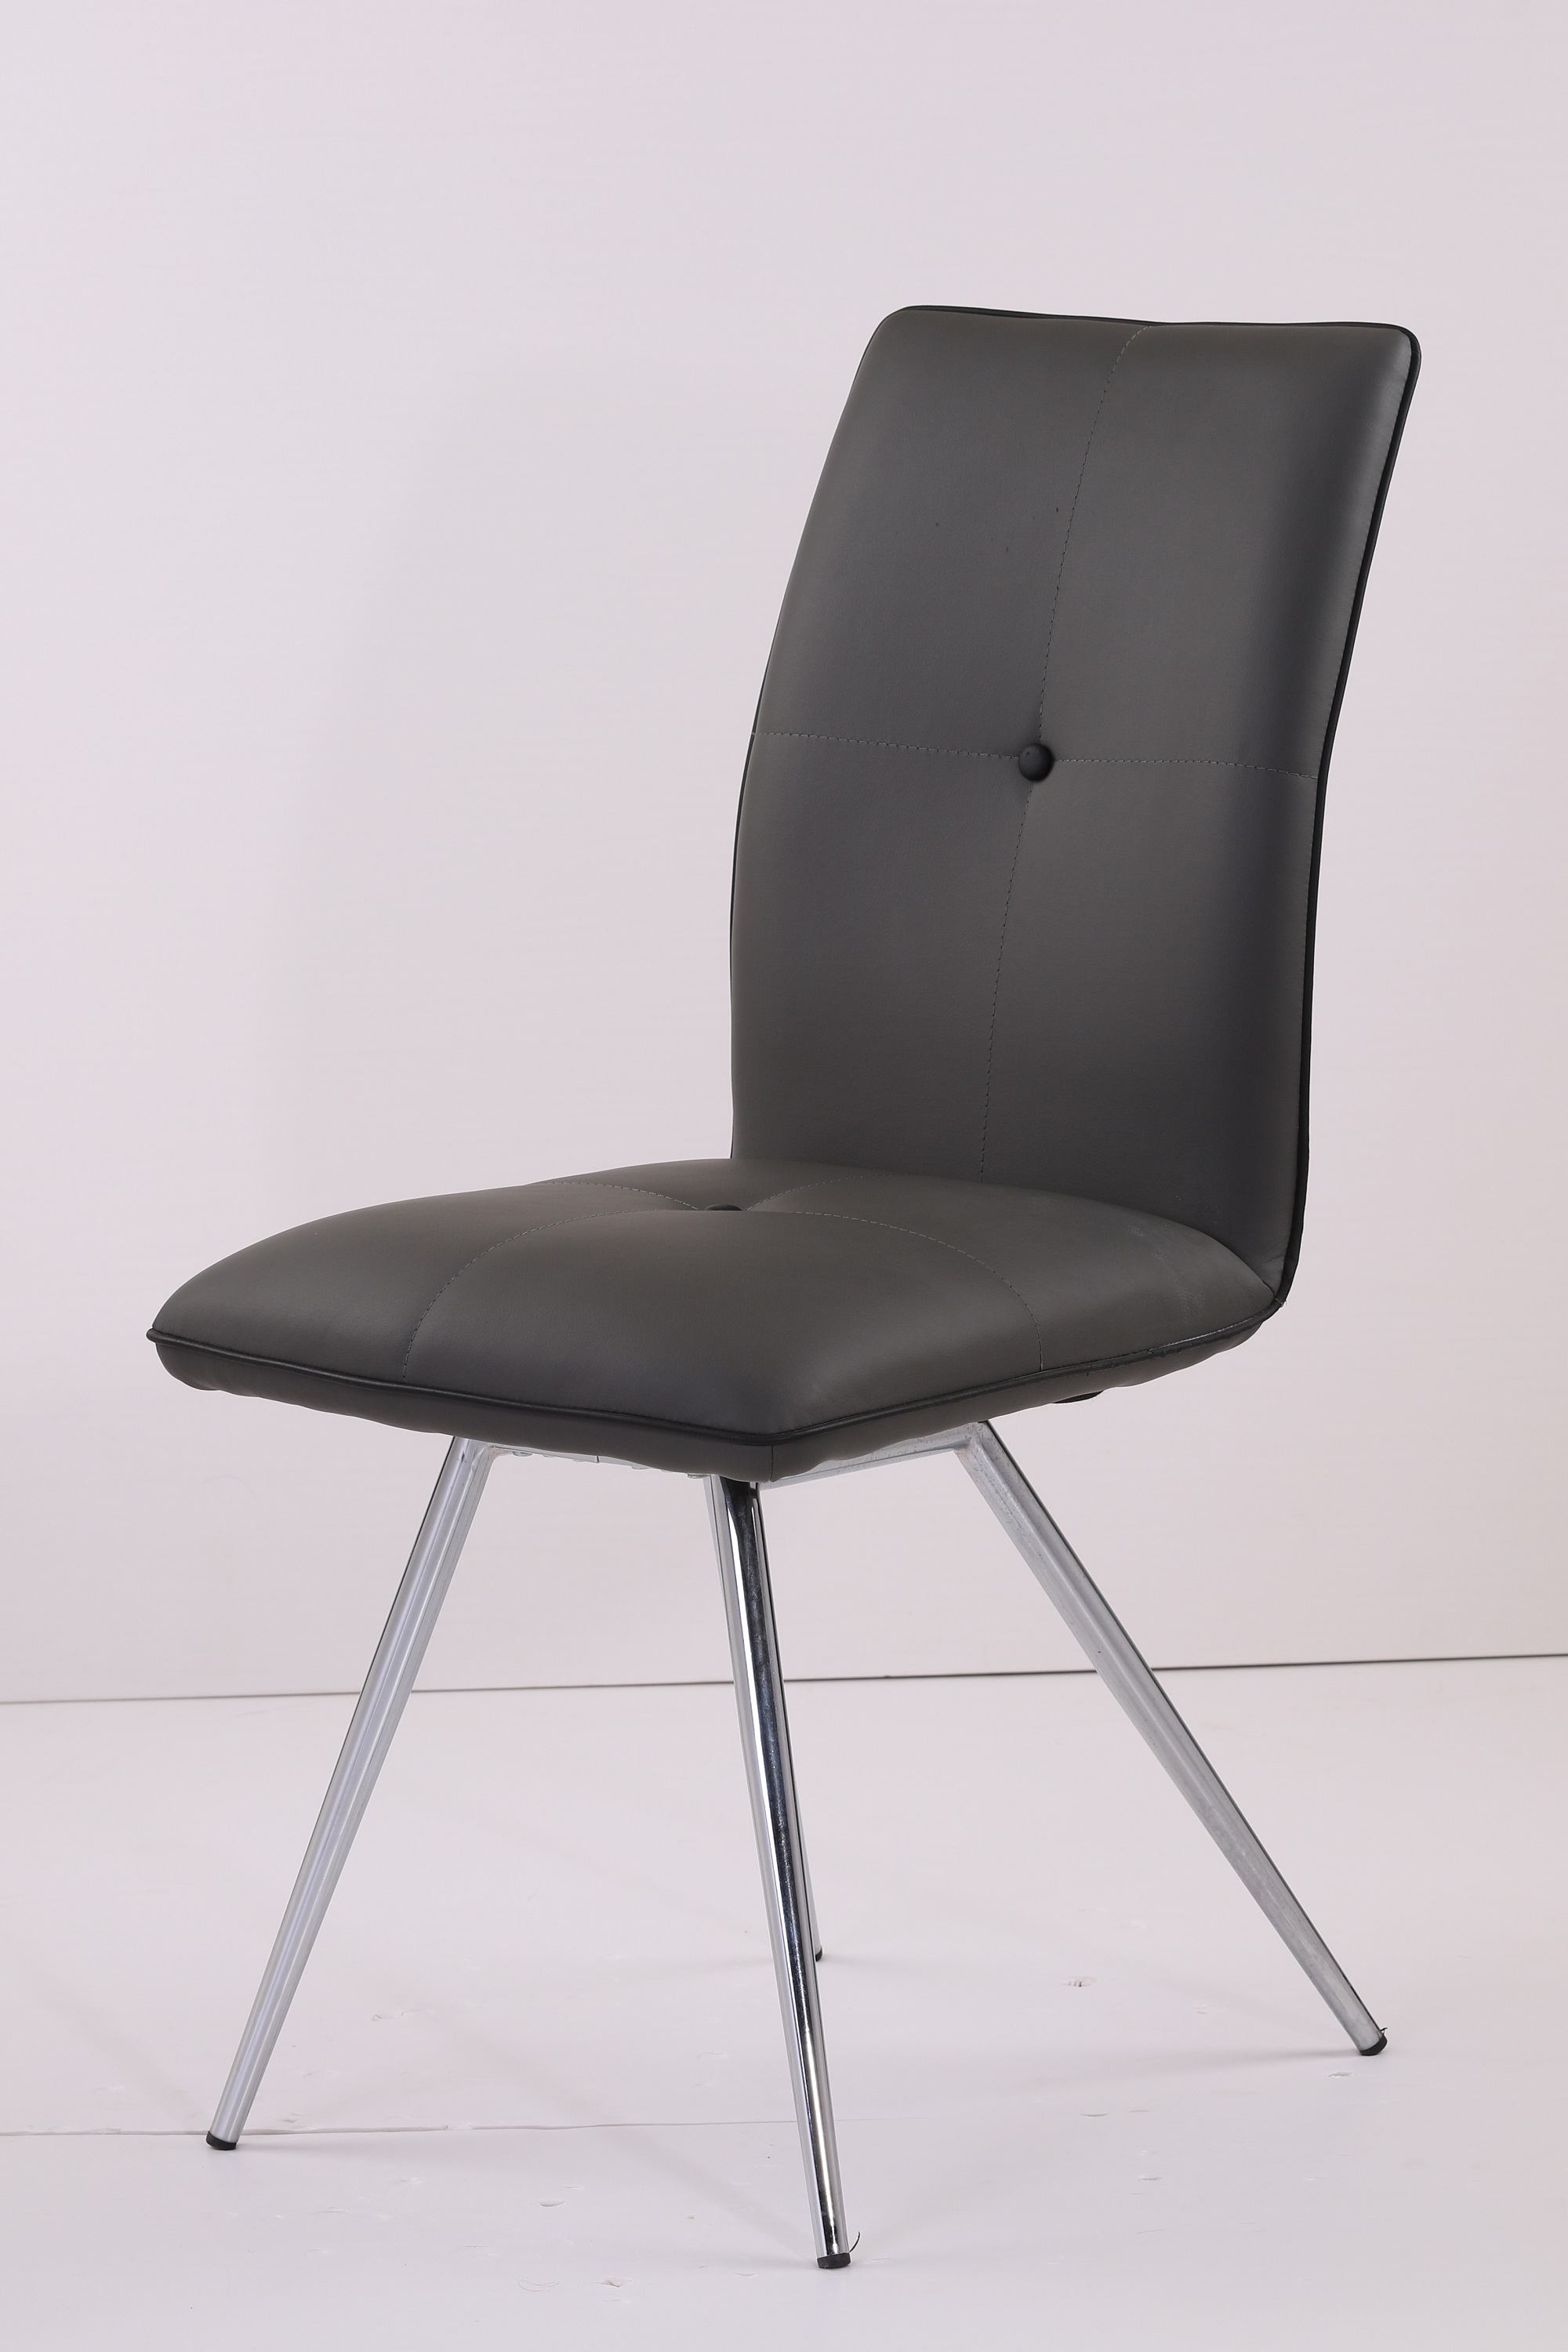 Dining chair selling